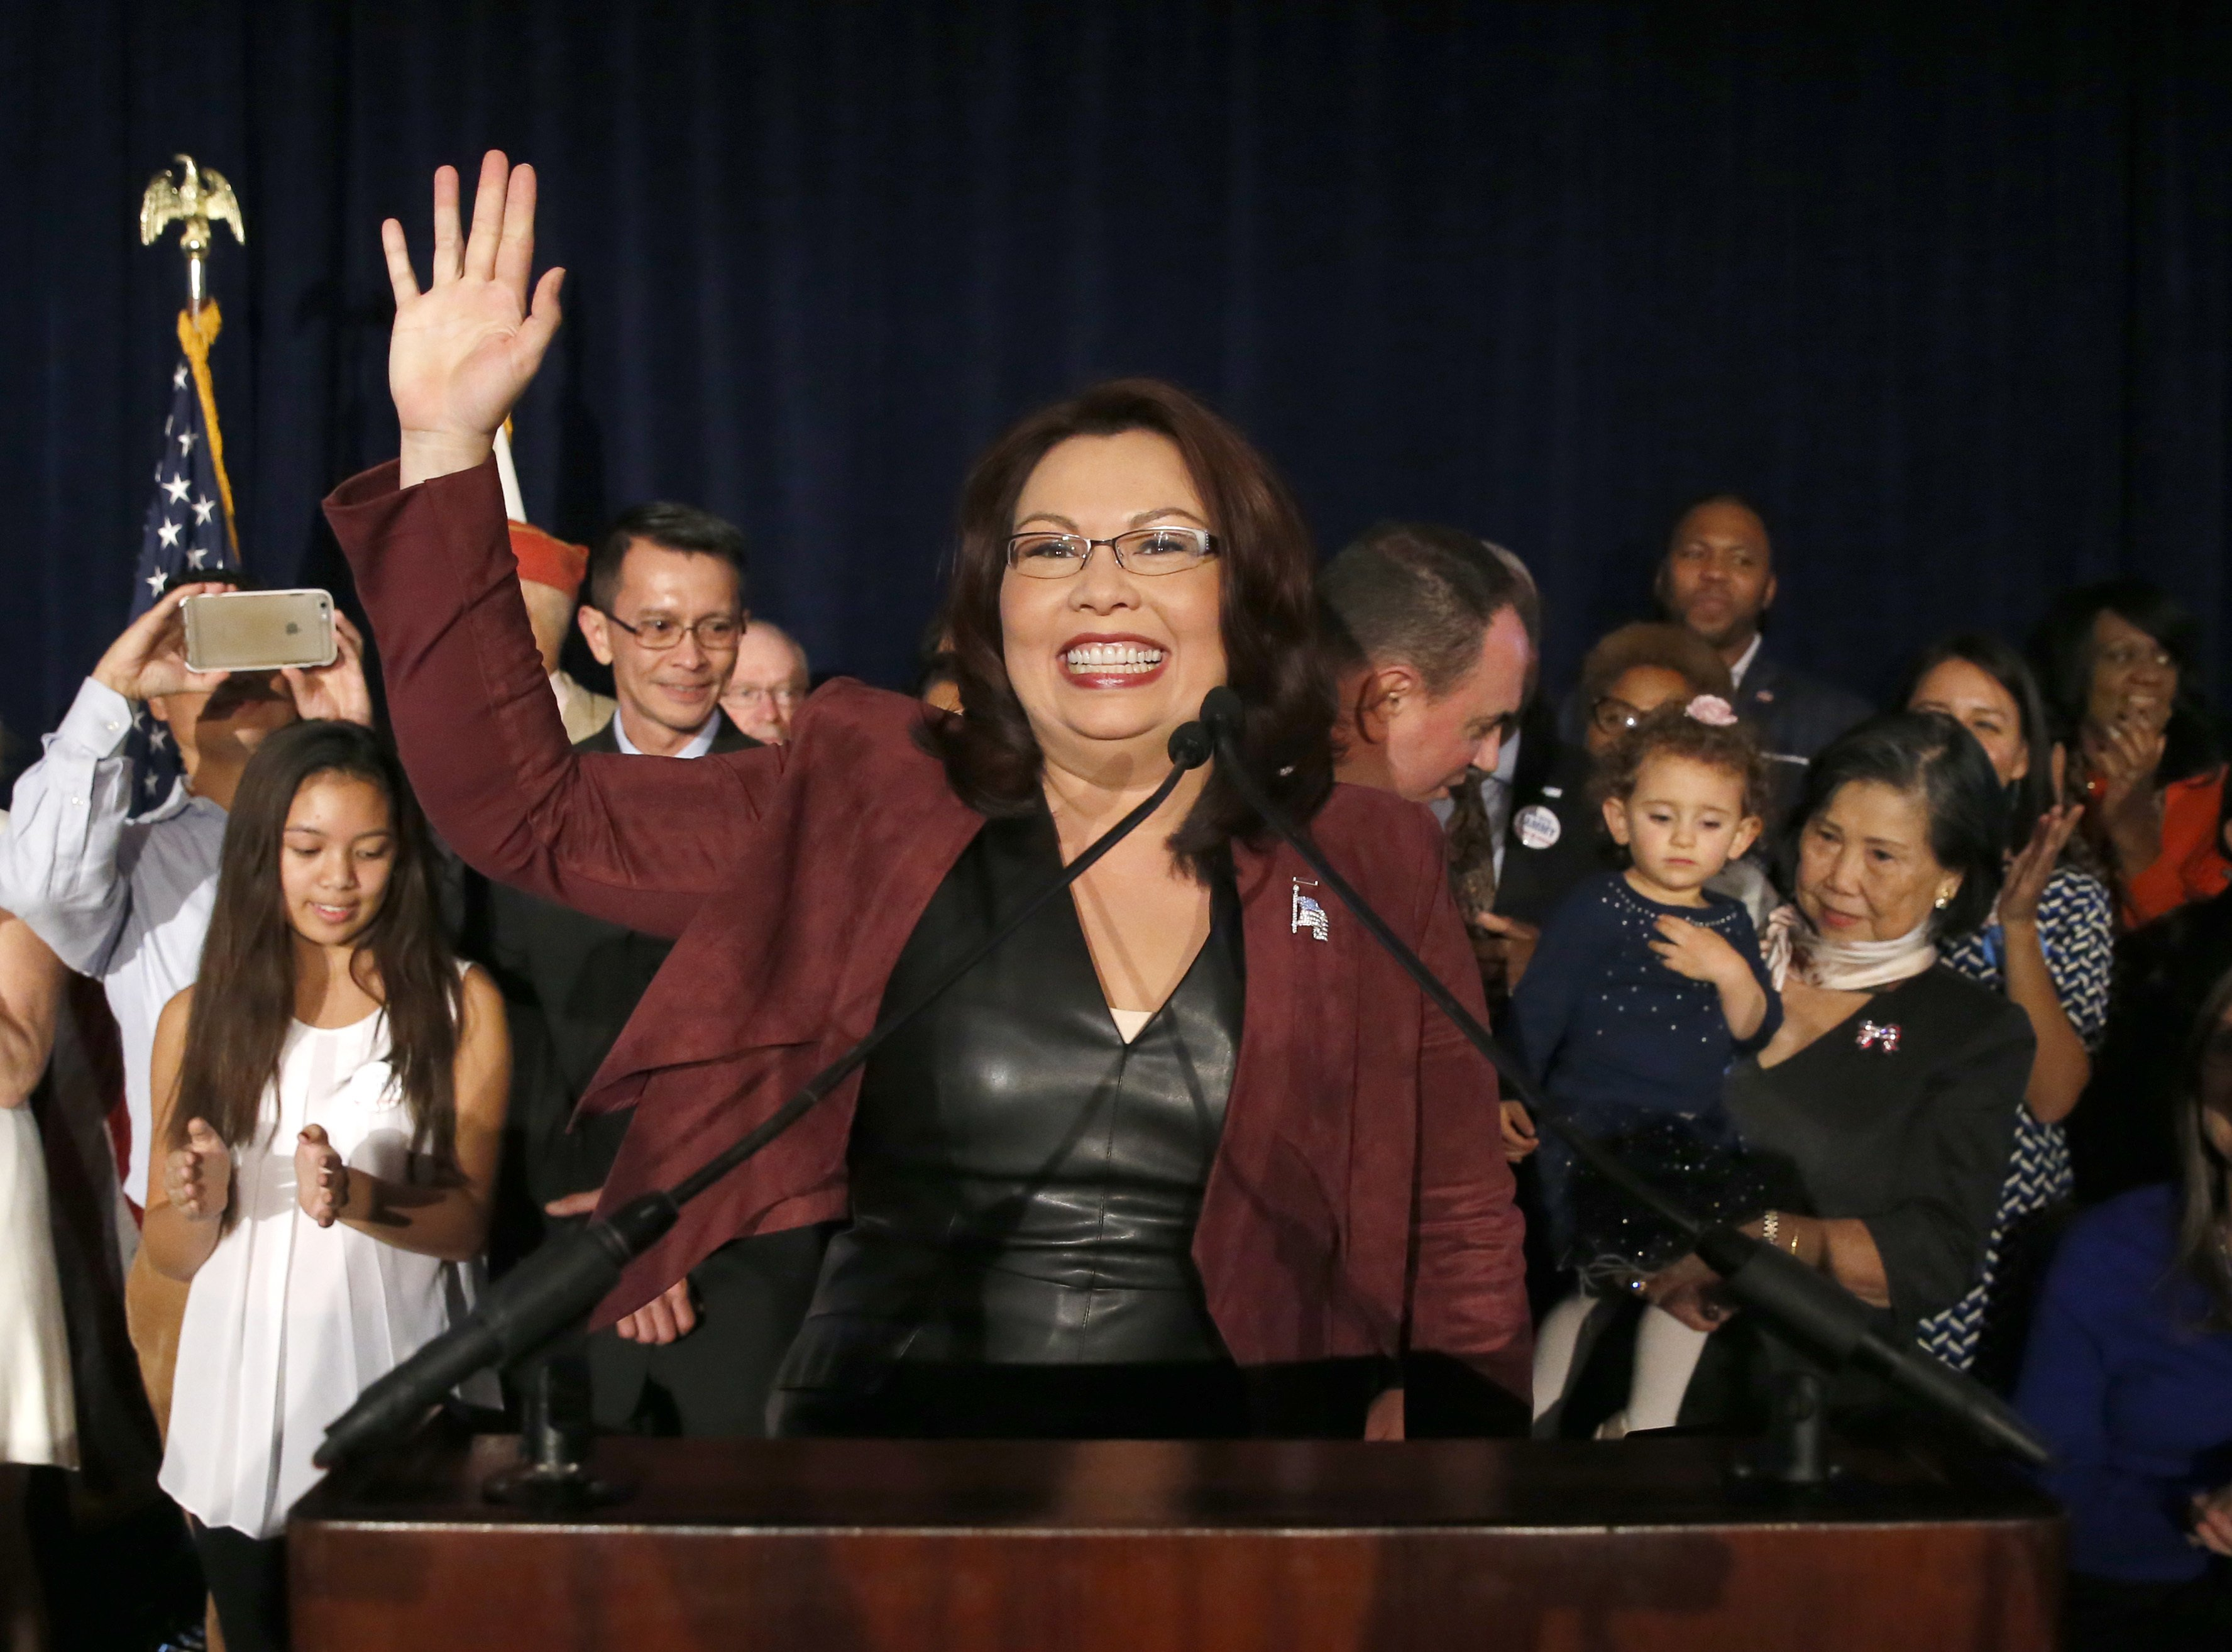 Tammy Duckworth is pregnant, would be 1st senator to give birth while in office